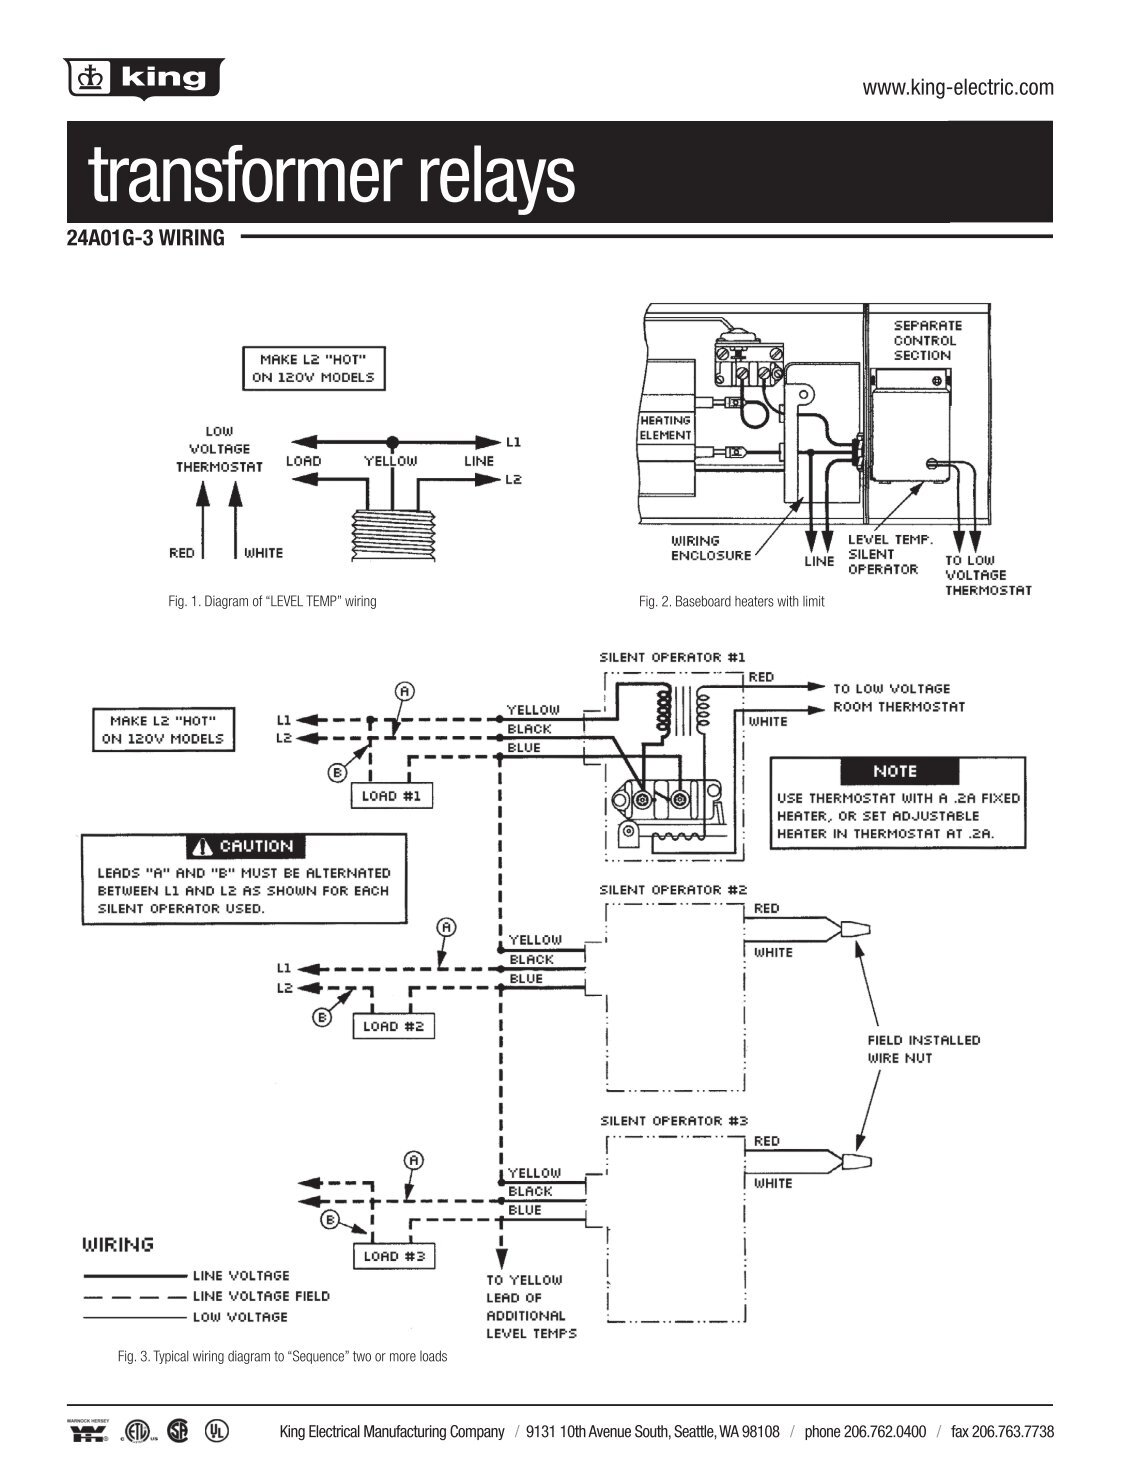 hm100 ignition system wiring diagram